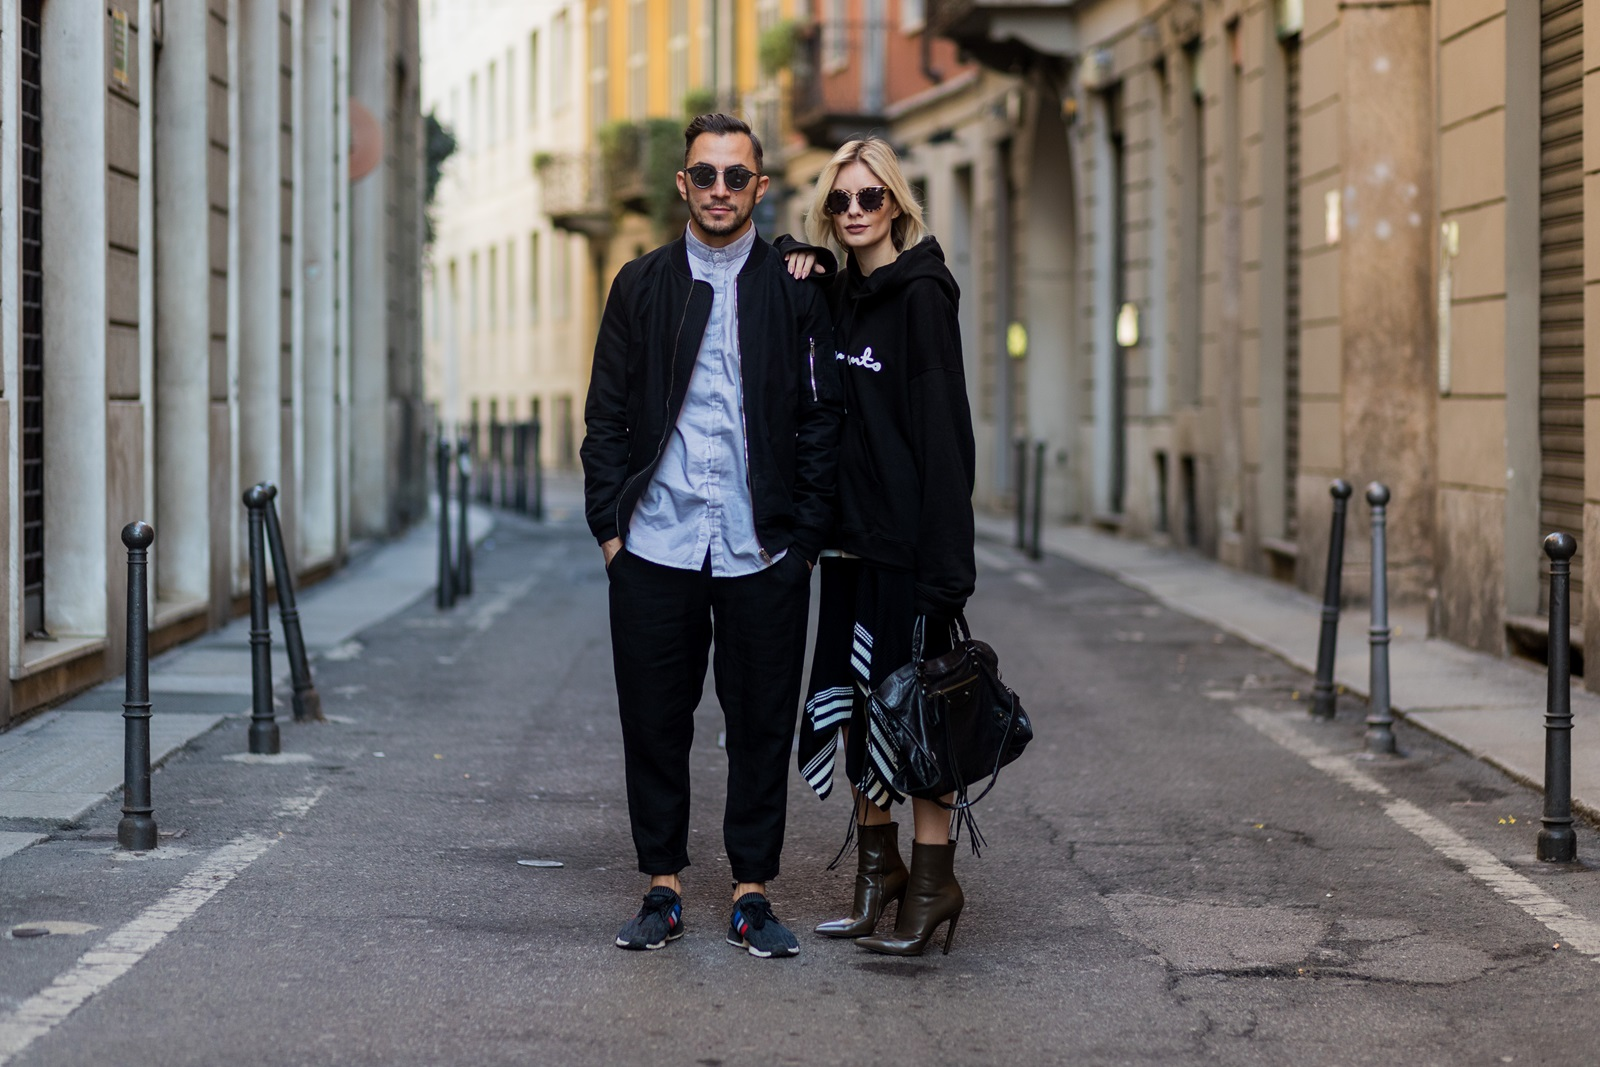 MILAN, ITALY - FEBRUARY 26: Couple Dima wearing Rick Owens Bomberjacket, Boris Sabberi Bidjan Shirt, Rick Owens Loose Pants, Adidas Nmd Sneaker, Dior Magnitude Sunglasses and Lisa Hahnbueck wearing Vetements Sweatshirt, Designers Remix draped rip knit, Balenciaga Boots, Balenciaga Motorcycle bag, Prada Sunglasses during Milan Fashion Week Fall/Winter 2017/18 on February 26, 2017 in Milan, Italy. (Photo by Christian Vierig/Getty Images) *** Local Caption *** Lisa Hahnbueck